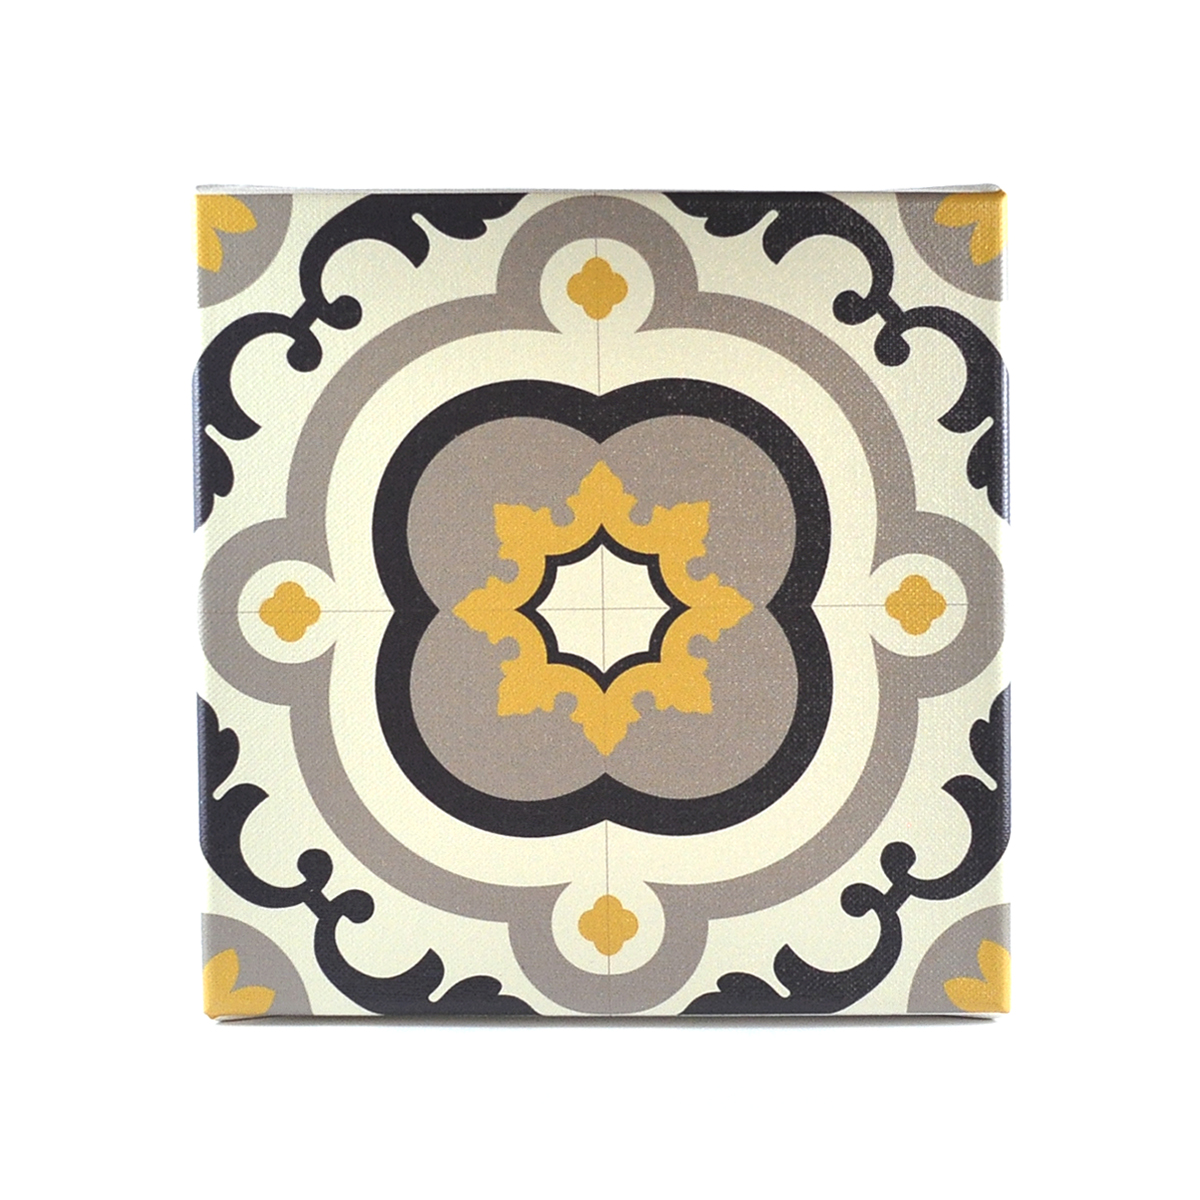 Malta Tile Canvas Block, pattern no.11